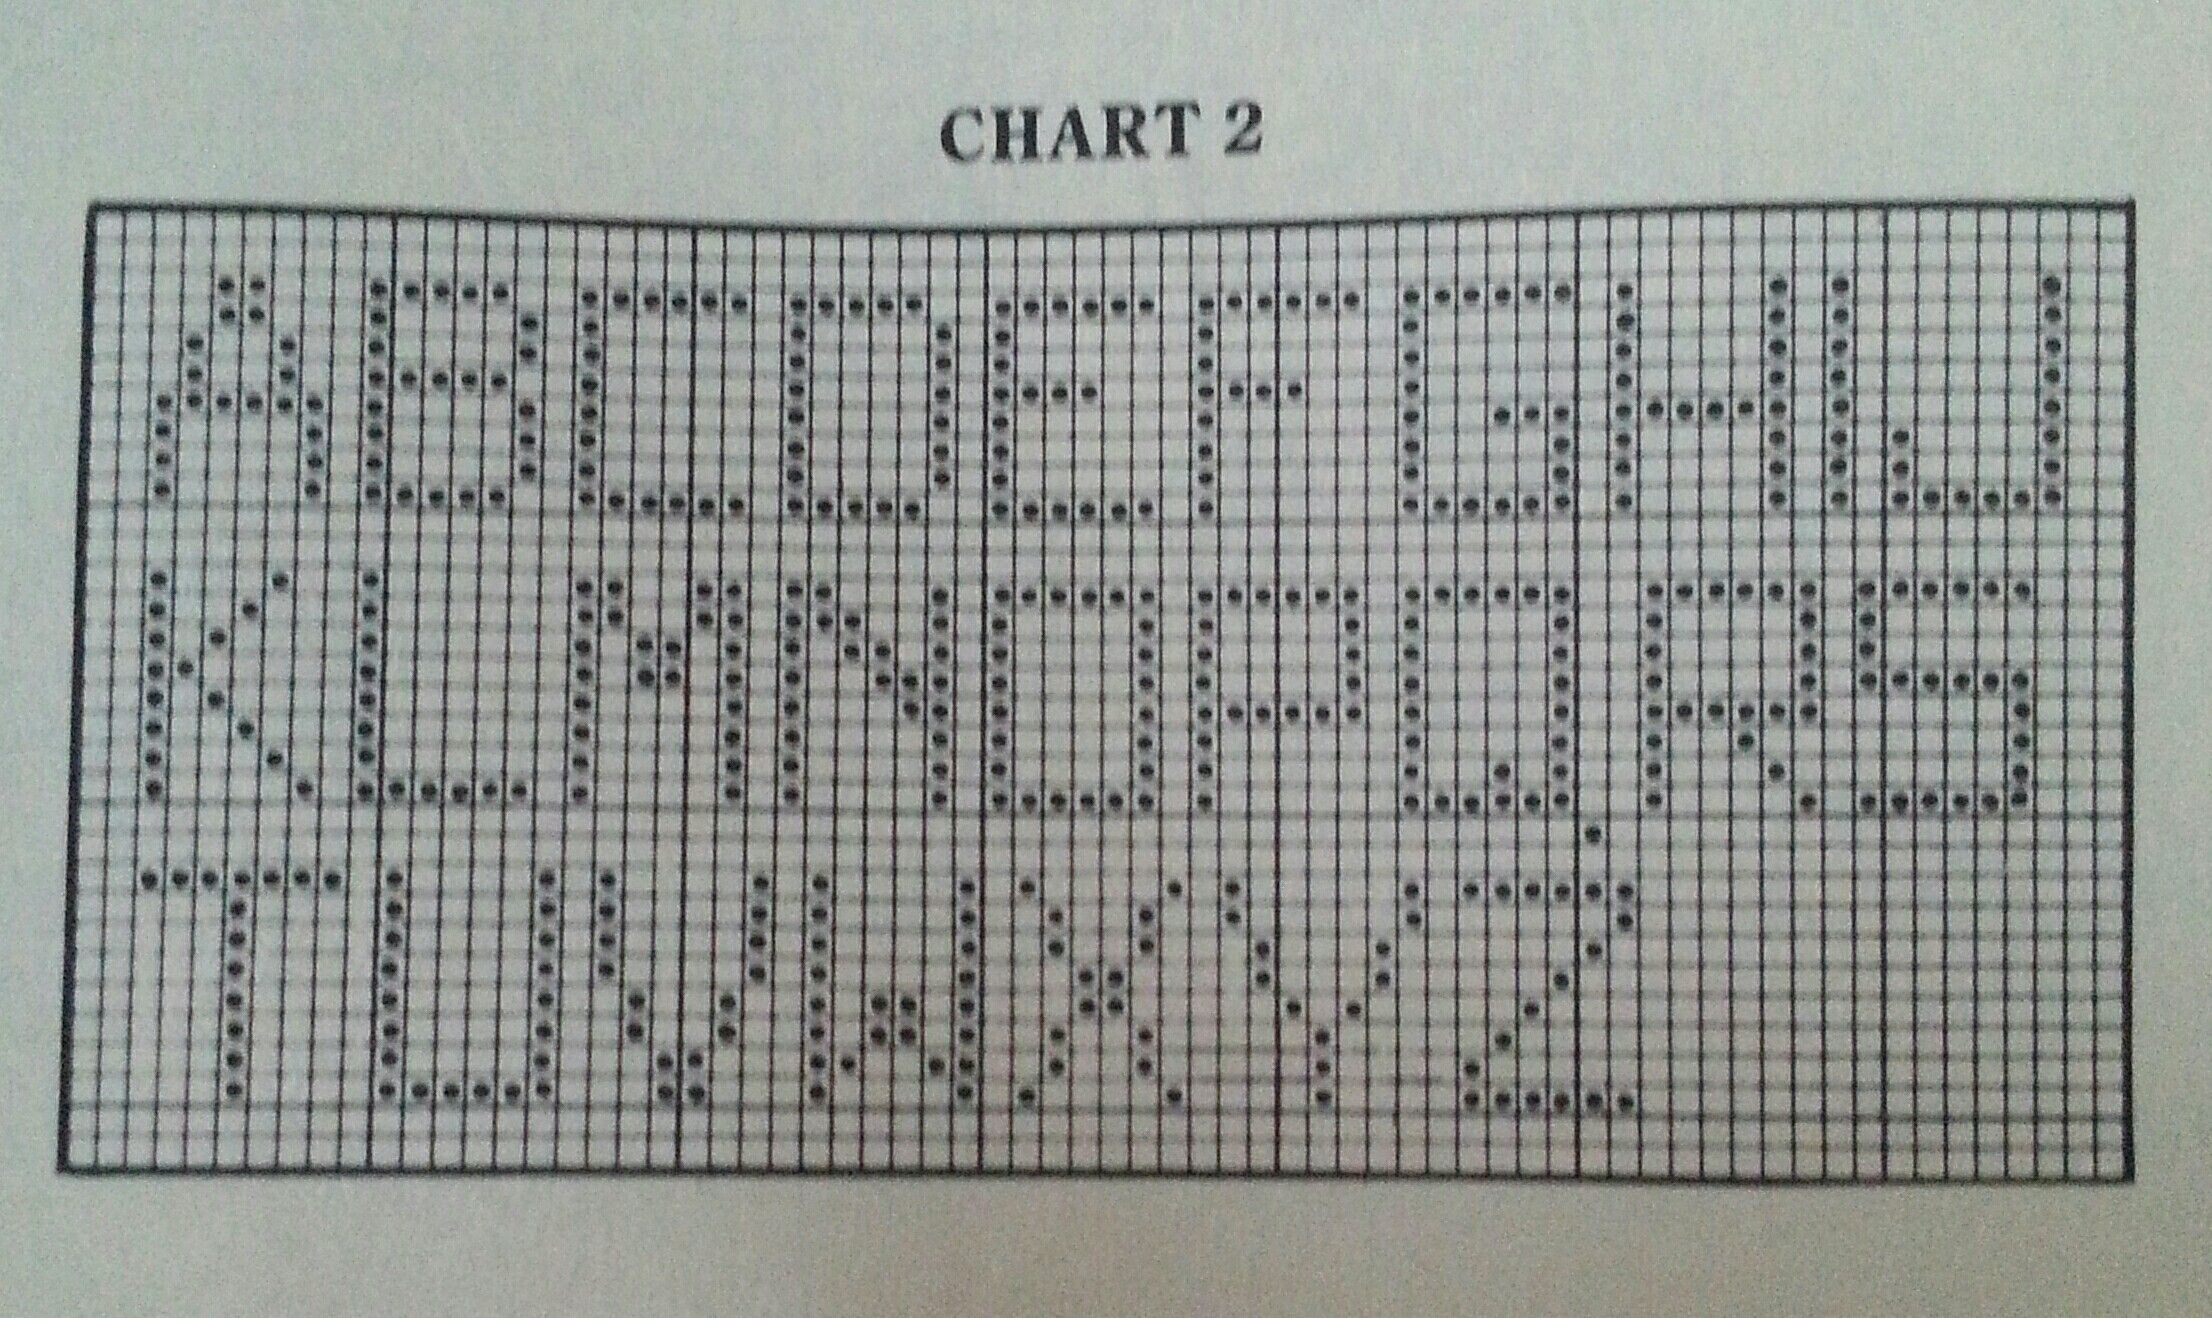 Filet crochet alphabet letters | Filet crochet patterns & diagrams ...